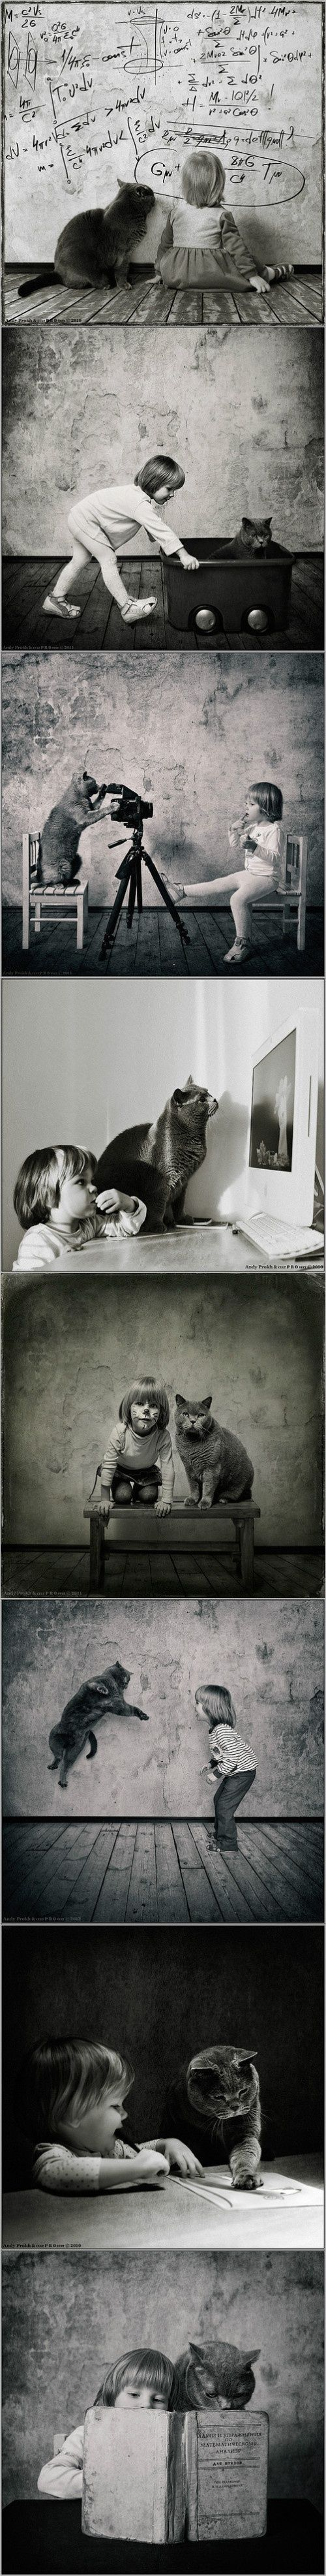 Don't miss this precious portrait series of a girl and her cat via pondly.com